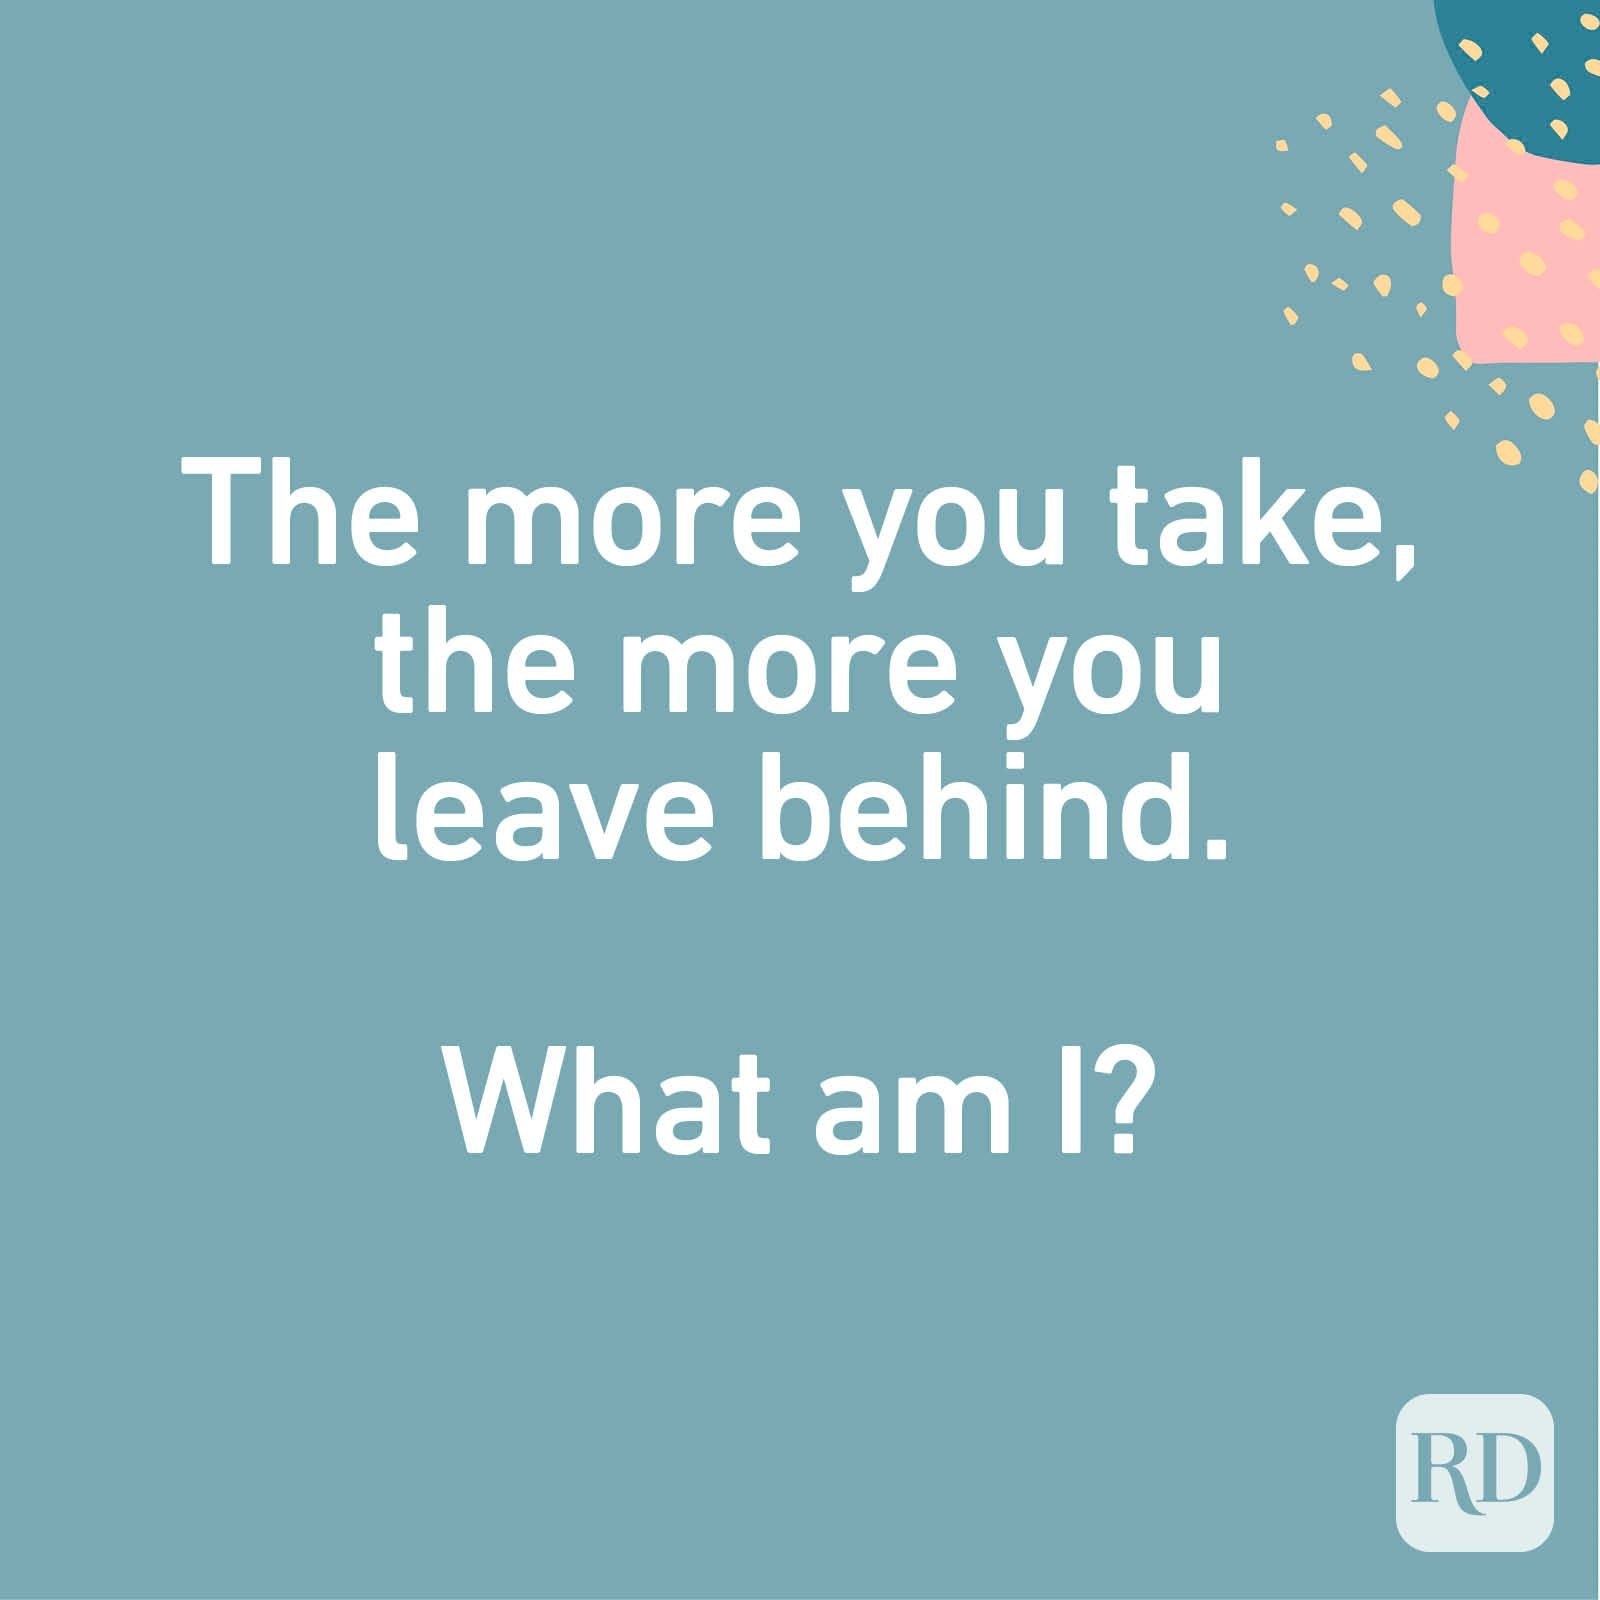 The more you take, the more you leave behind. What am I?